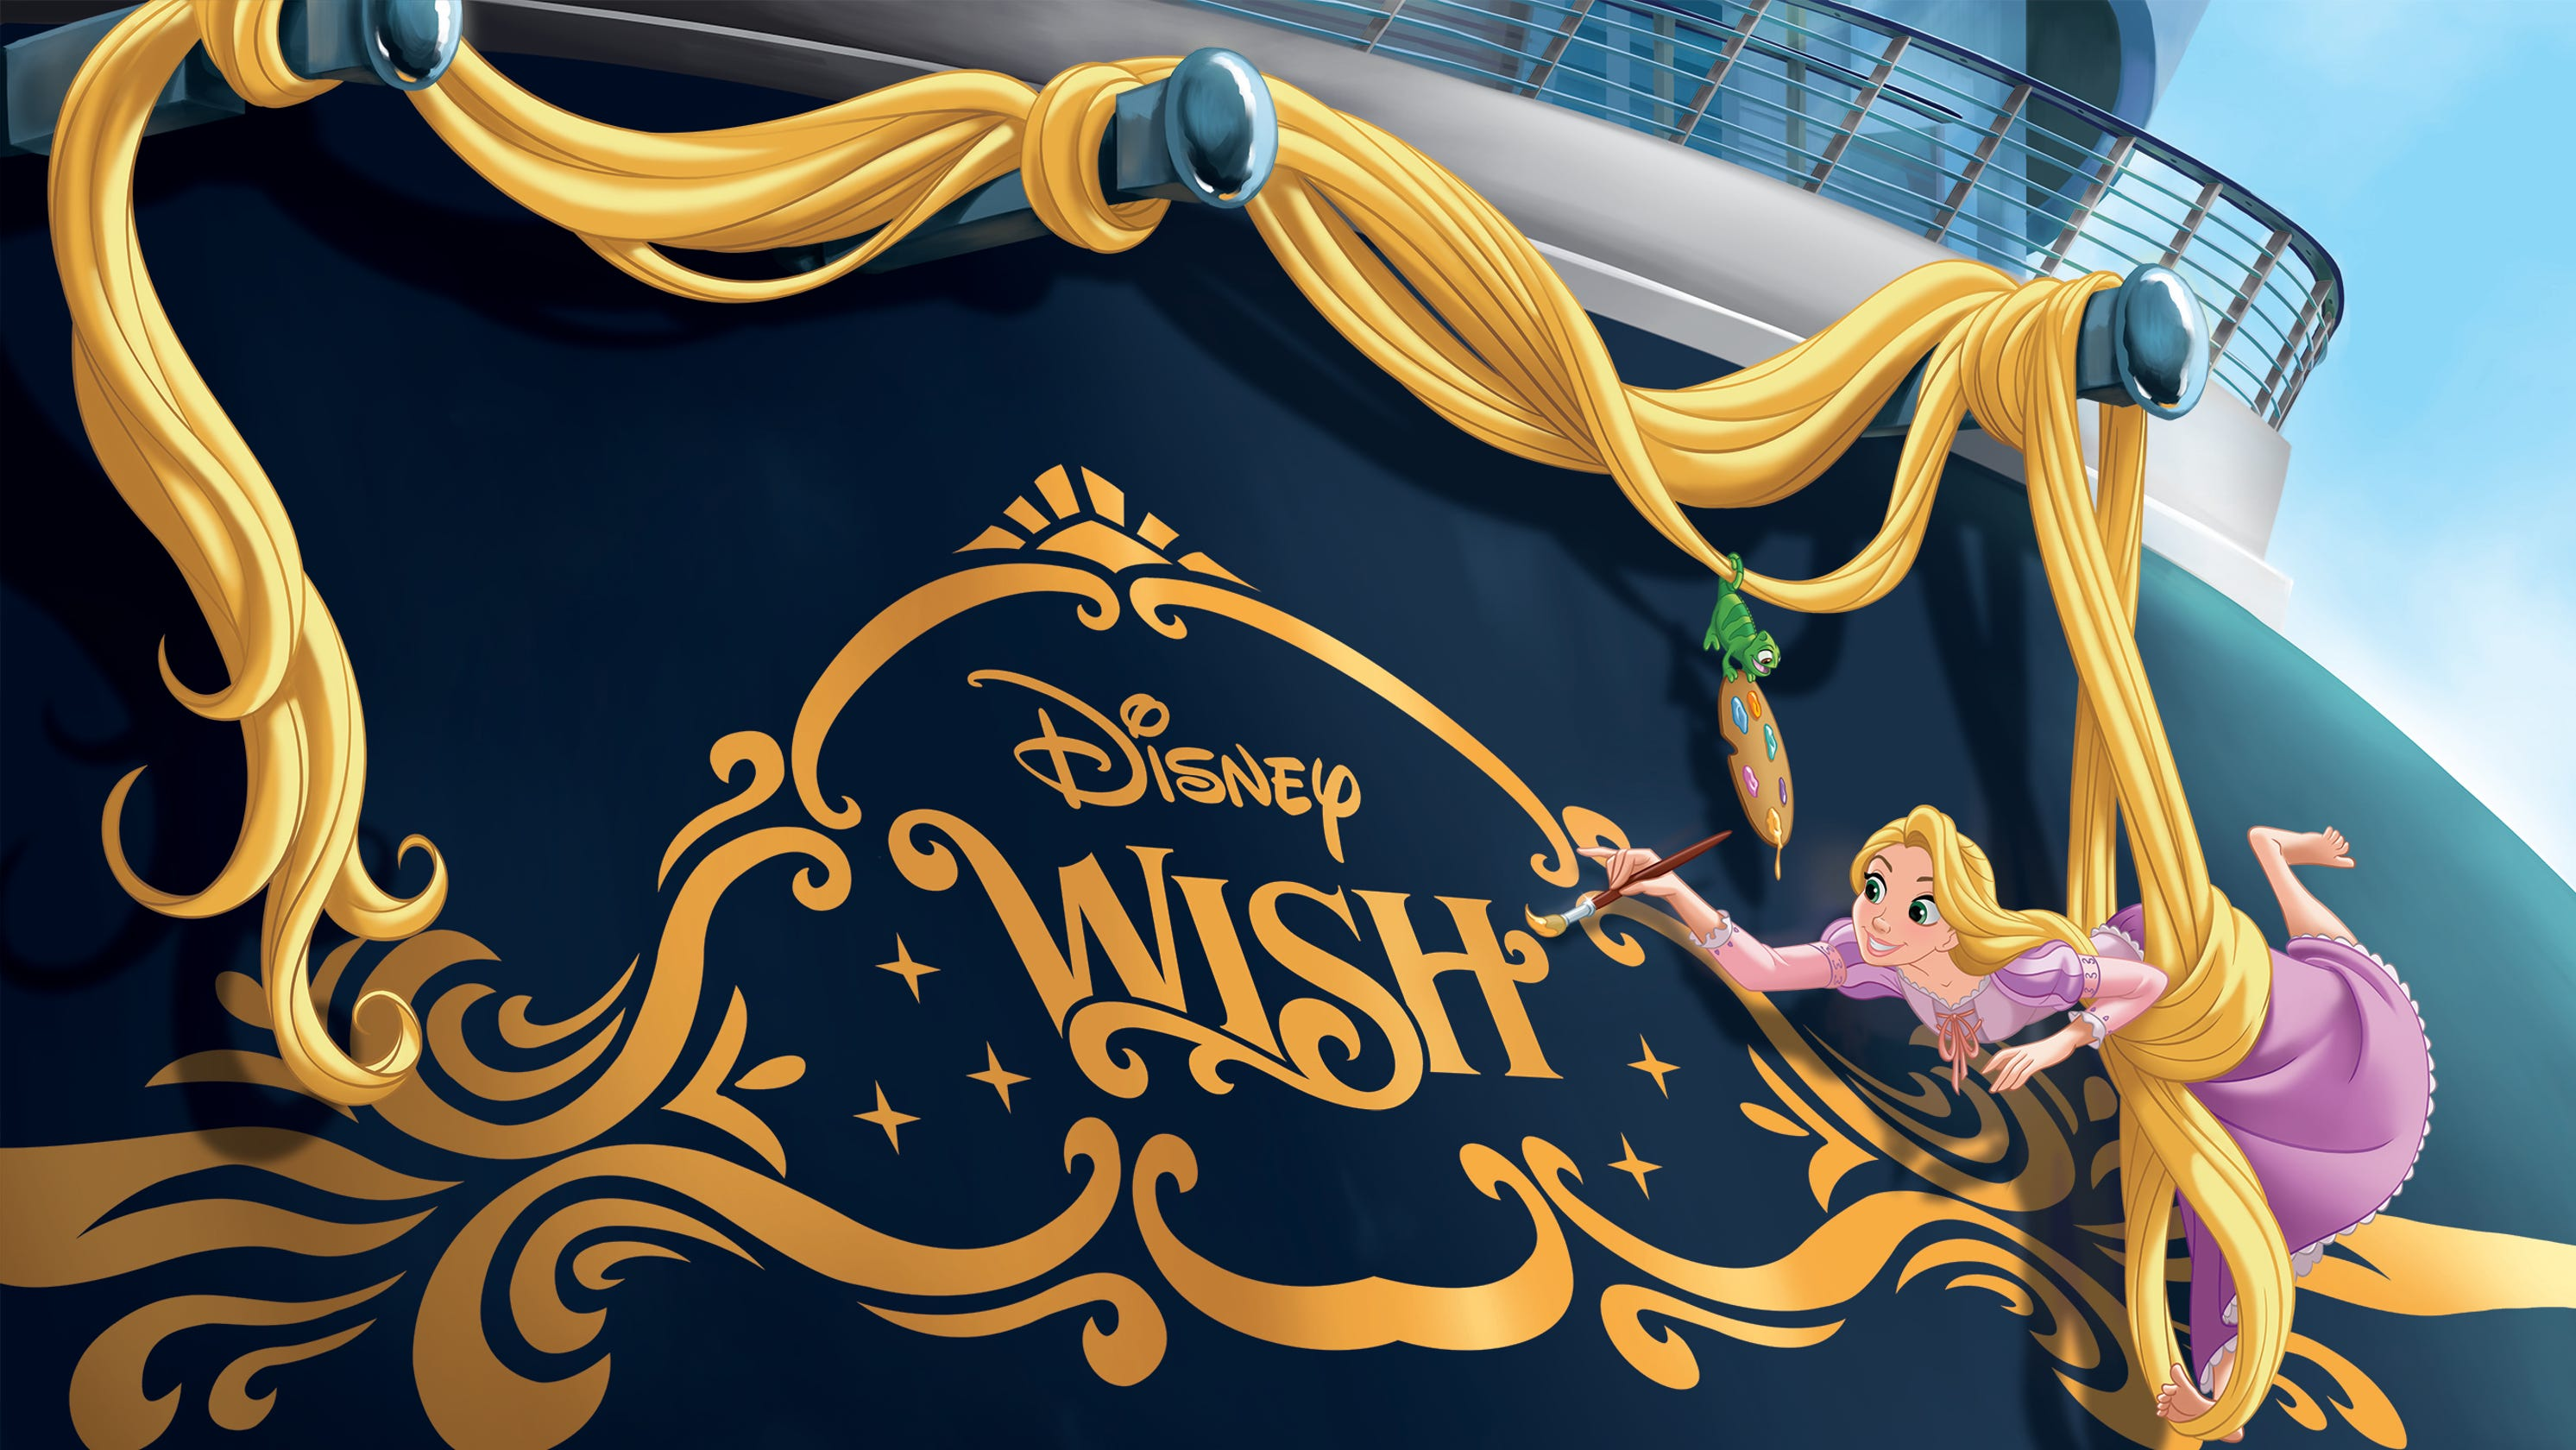 Disney Cruise Line names newest ship Wish, announces second private island